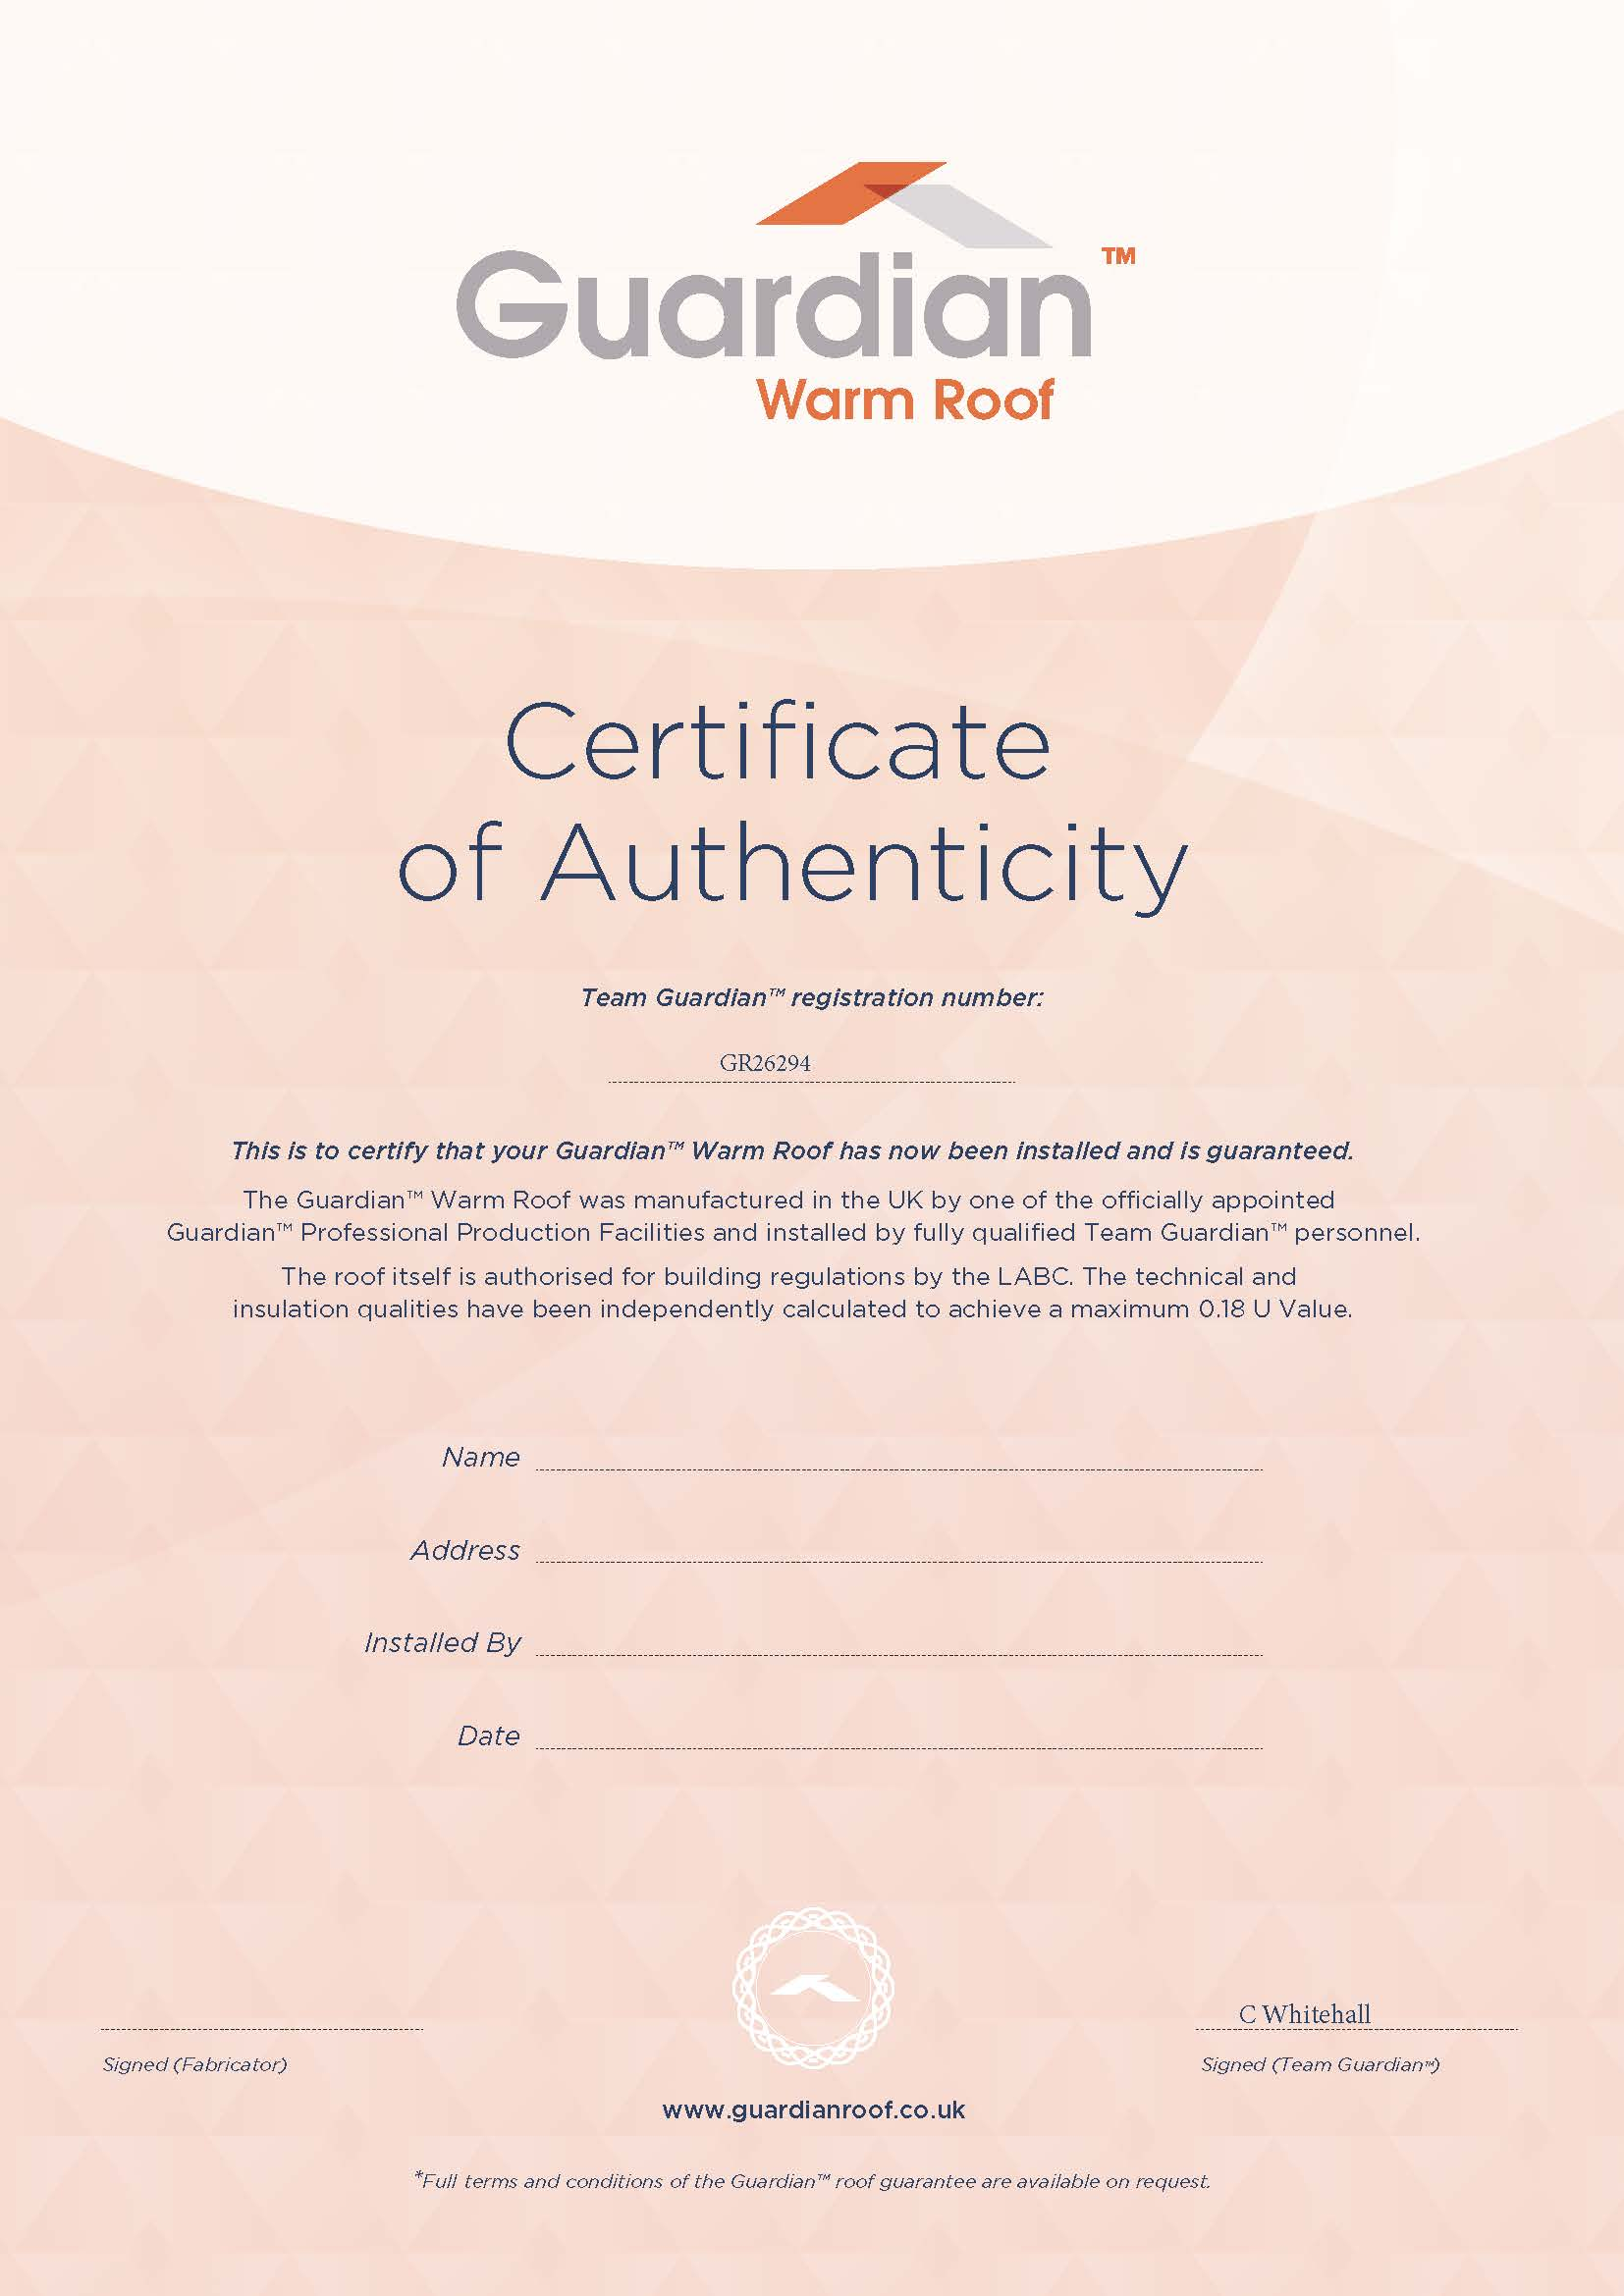 Guardian-Certificate-of-Authenticity